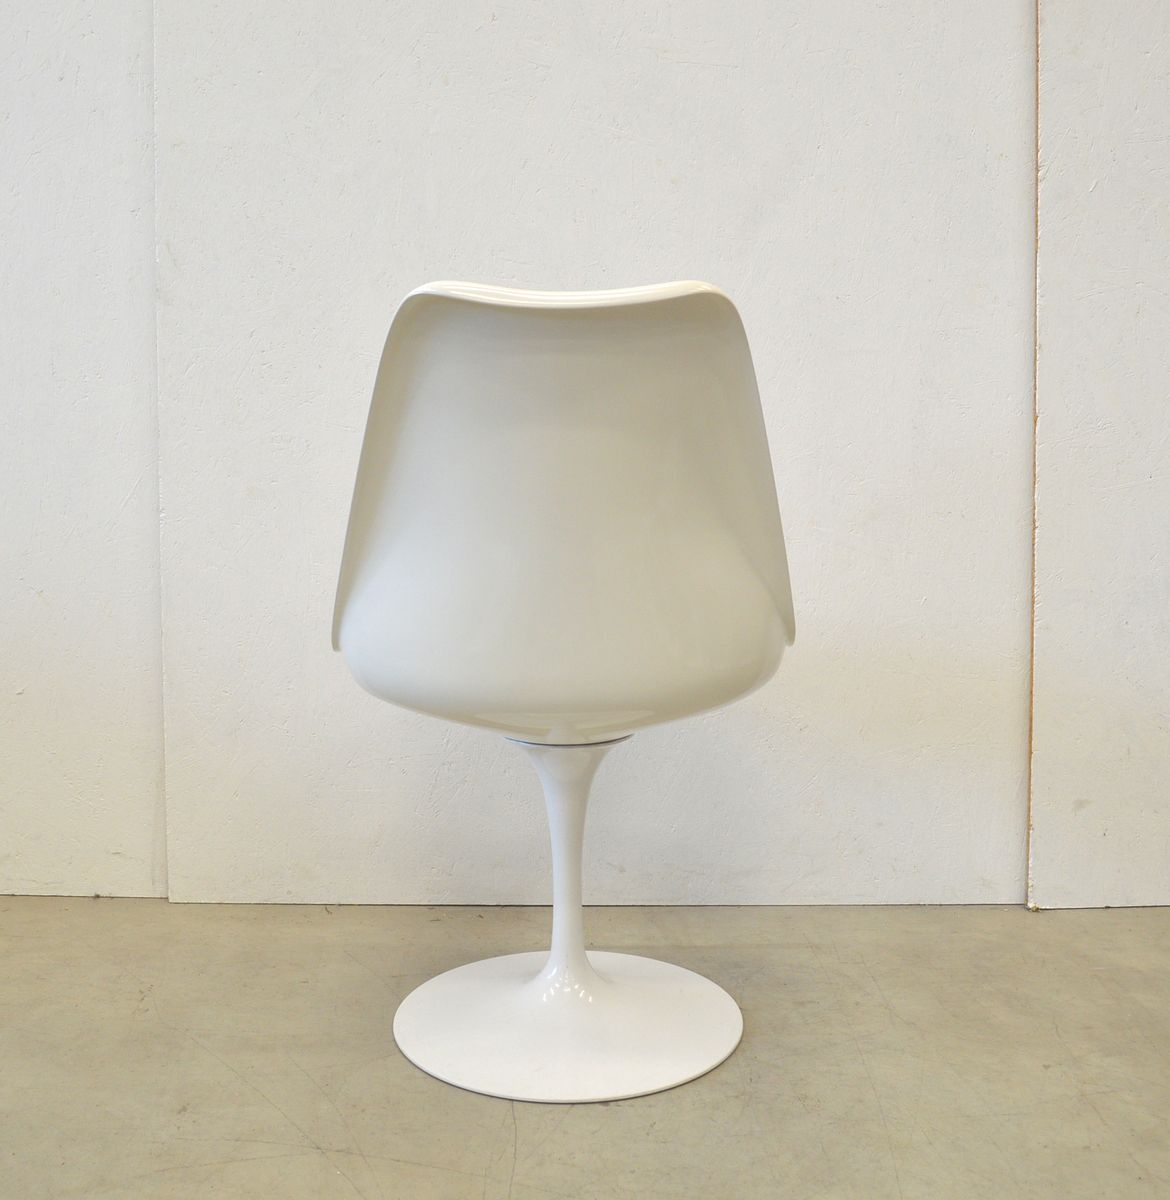 tulip table and chairs uk swing chair lowest price marble dining 6 by eero saarinen for